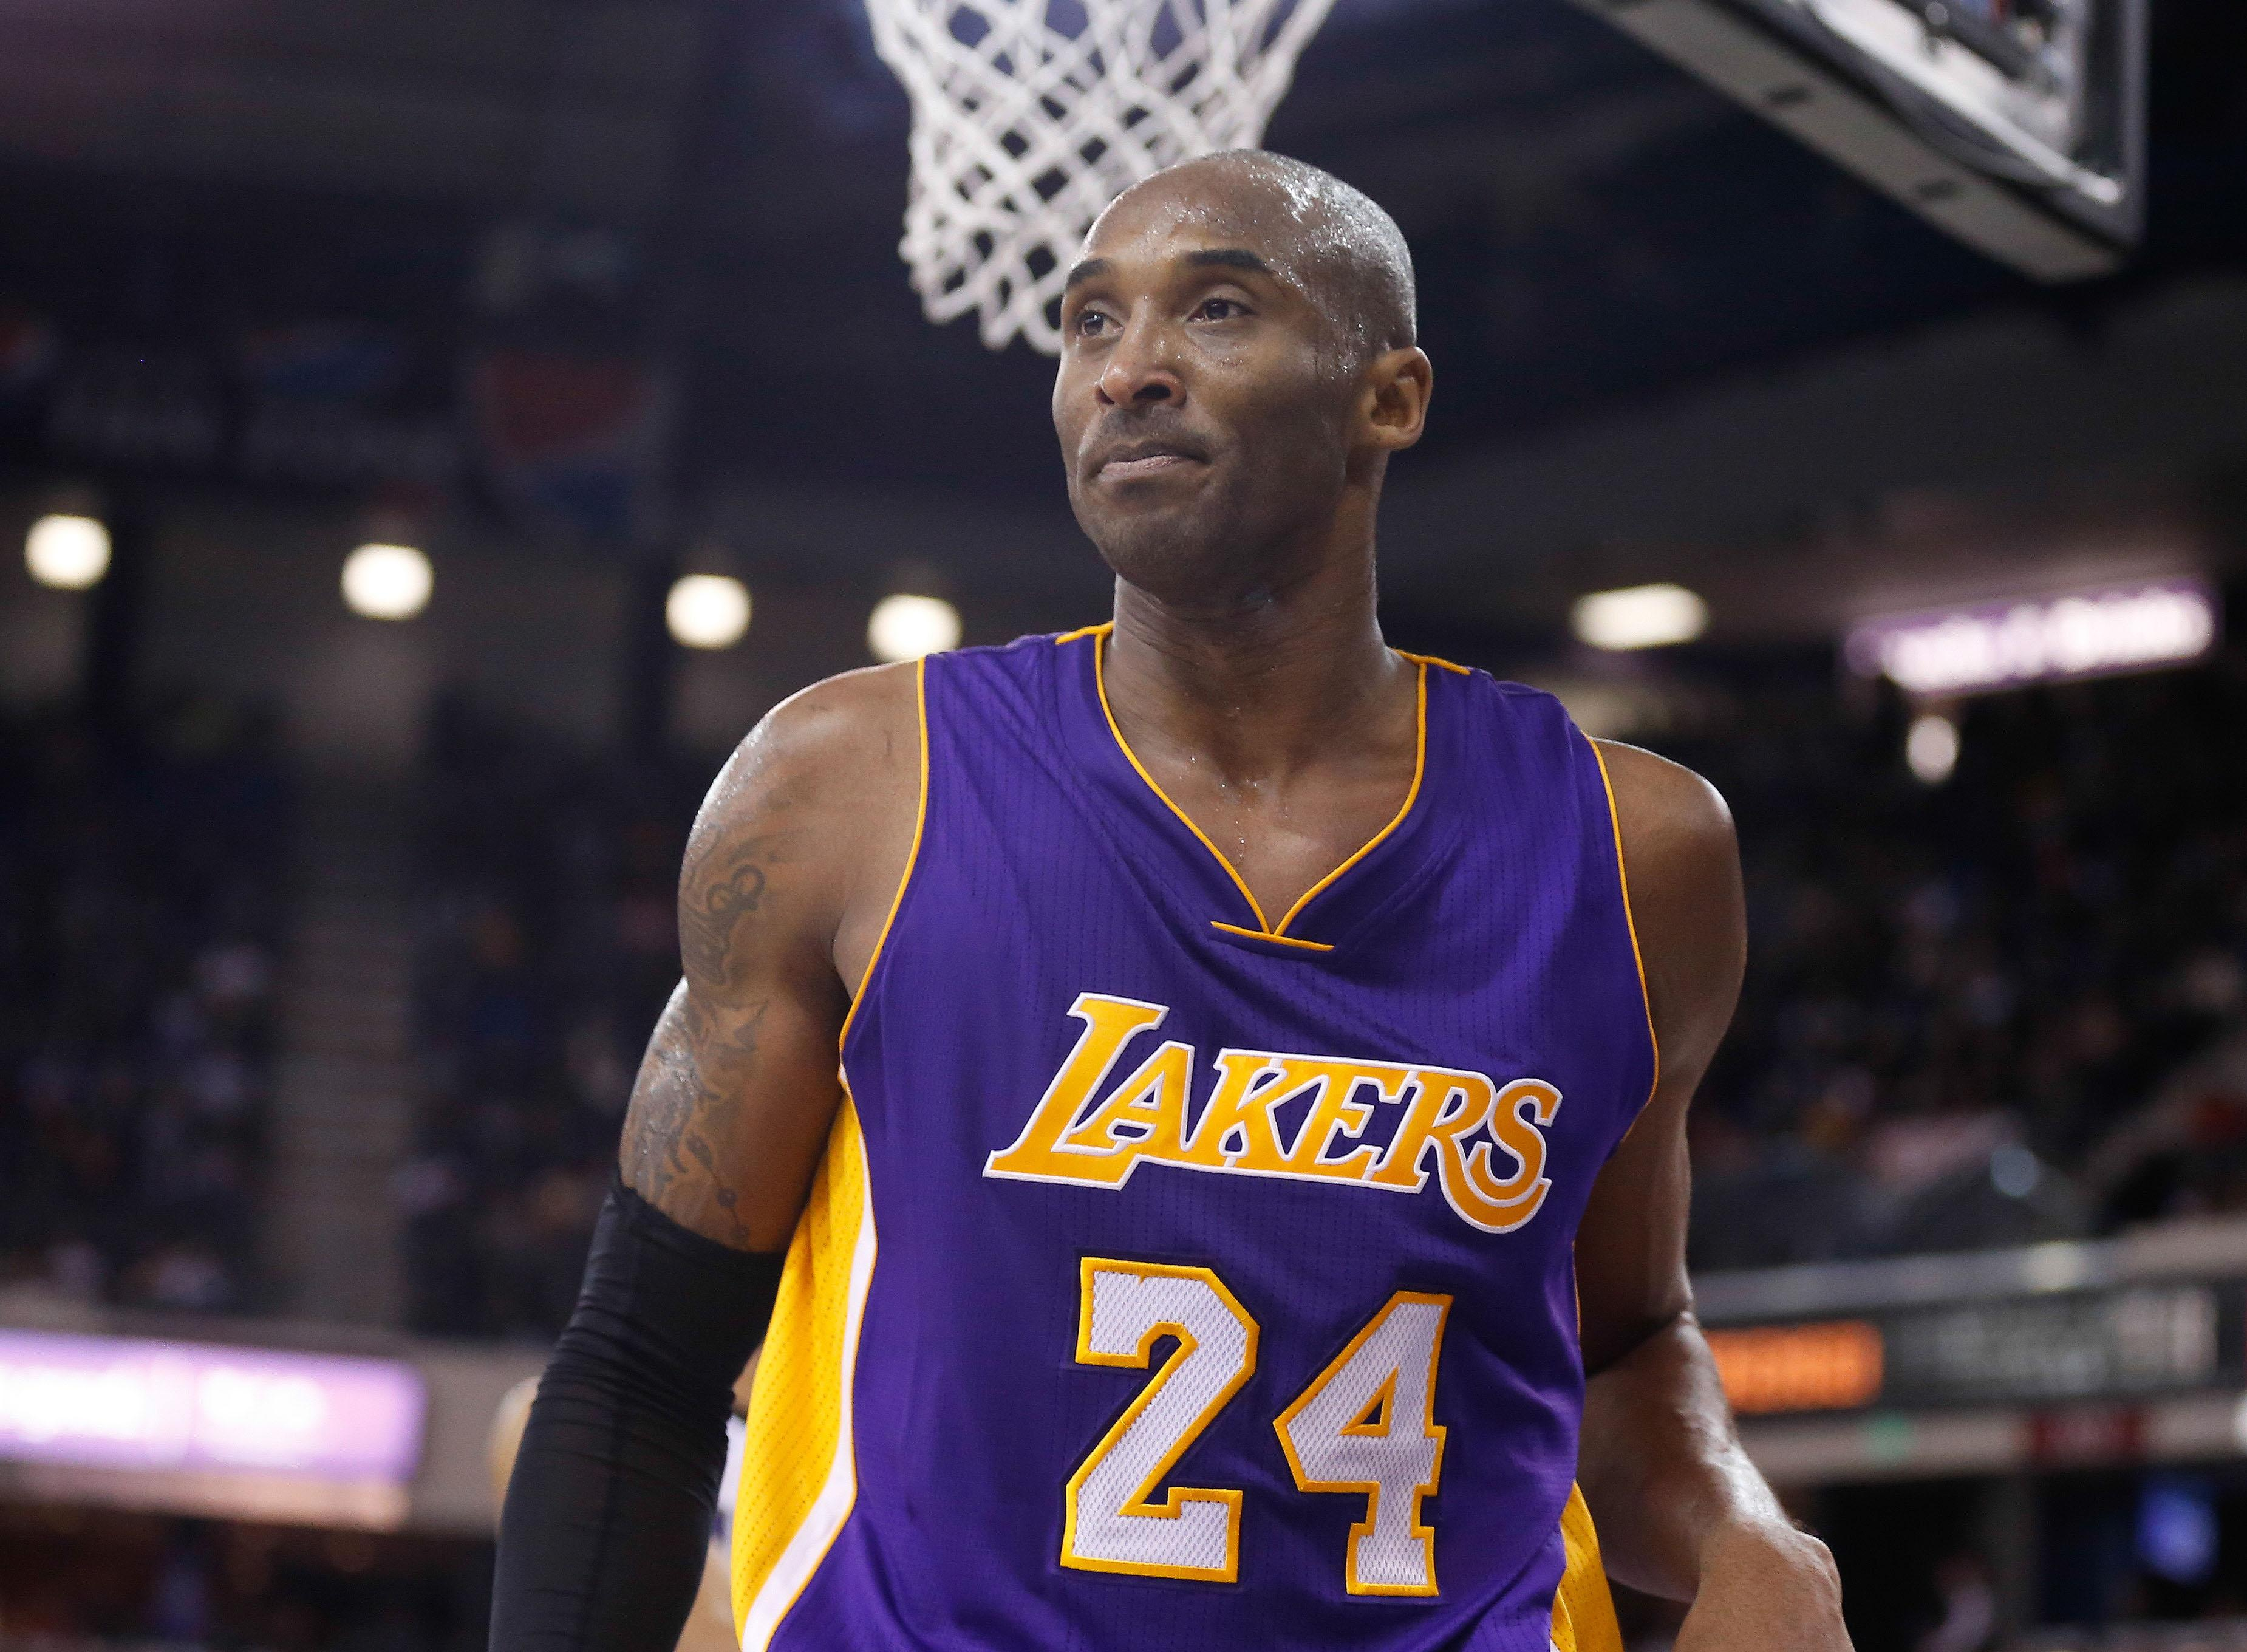 Kobe Bryant may take time off after another subpar outing in Lakers loss